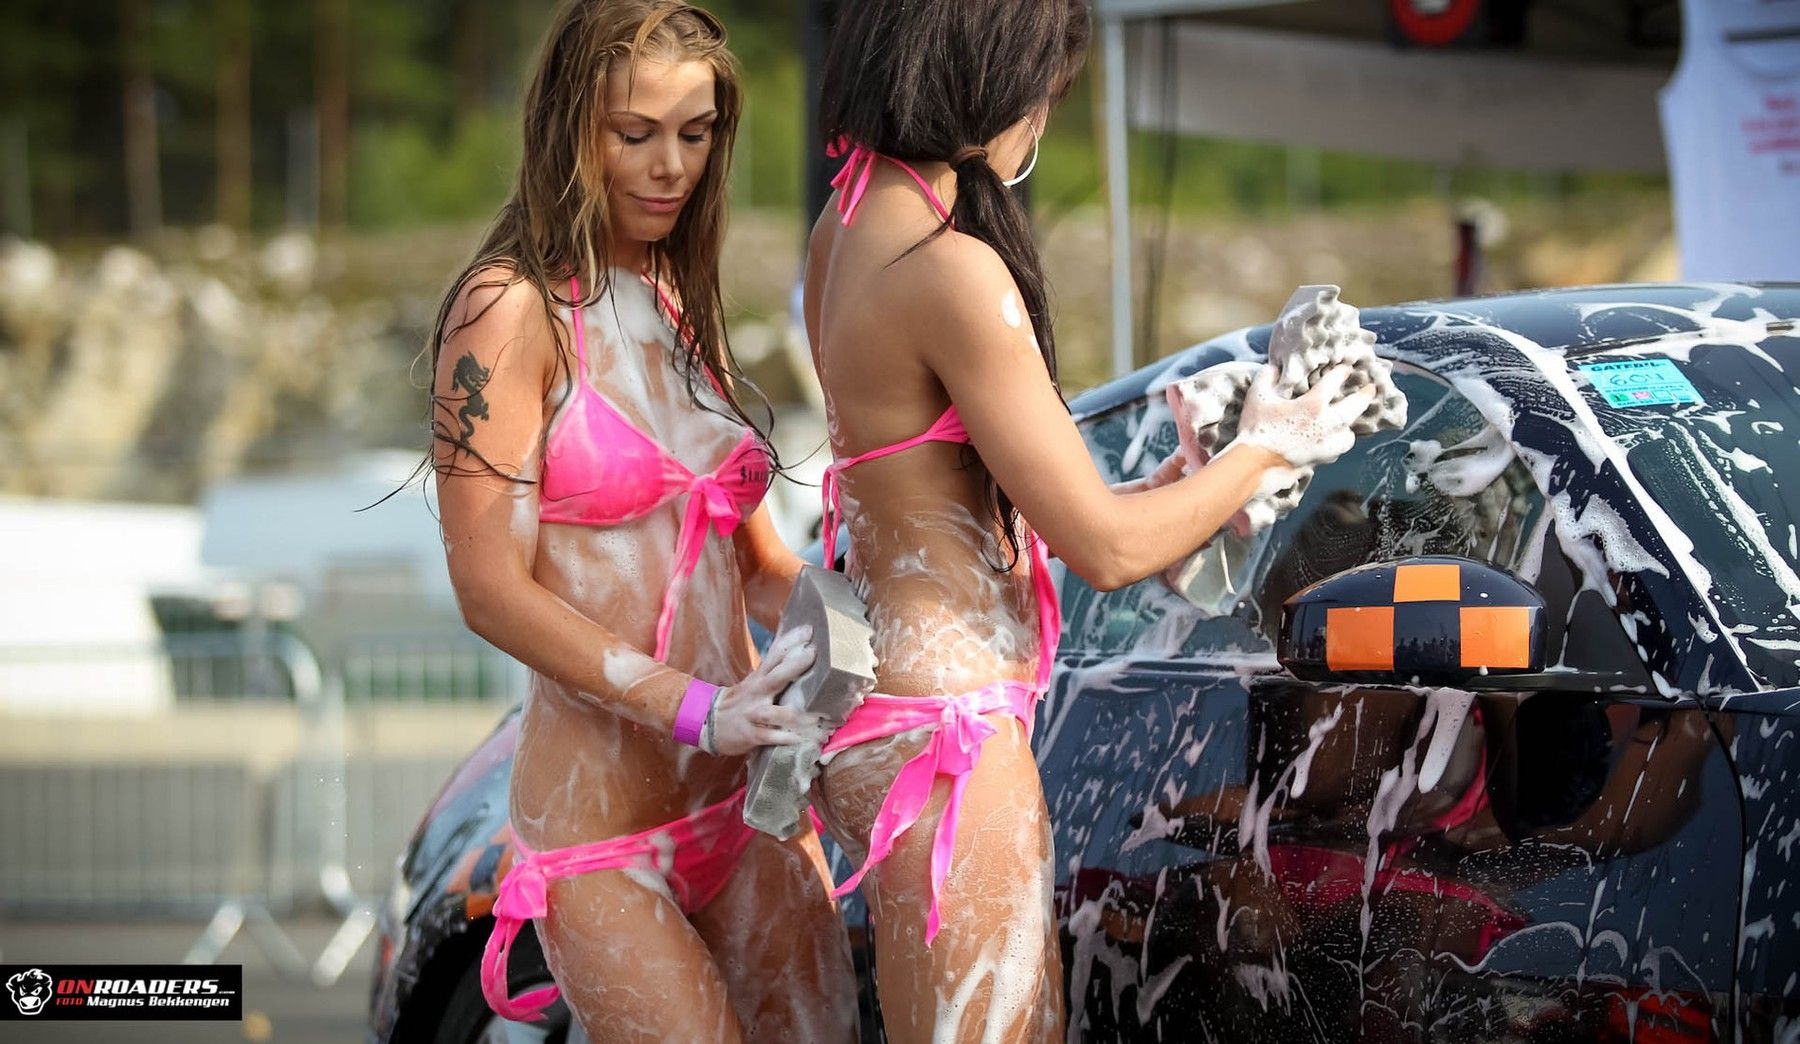 Bikini Car Wash Girls  Bikini And Car Wash  Pinterest -1021